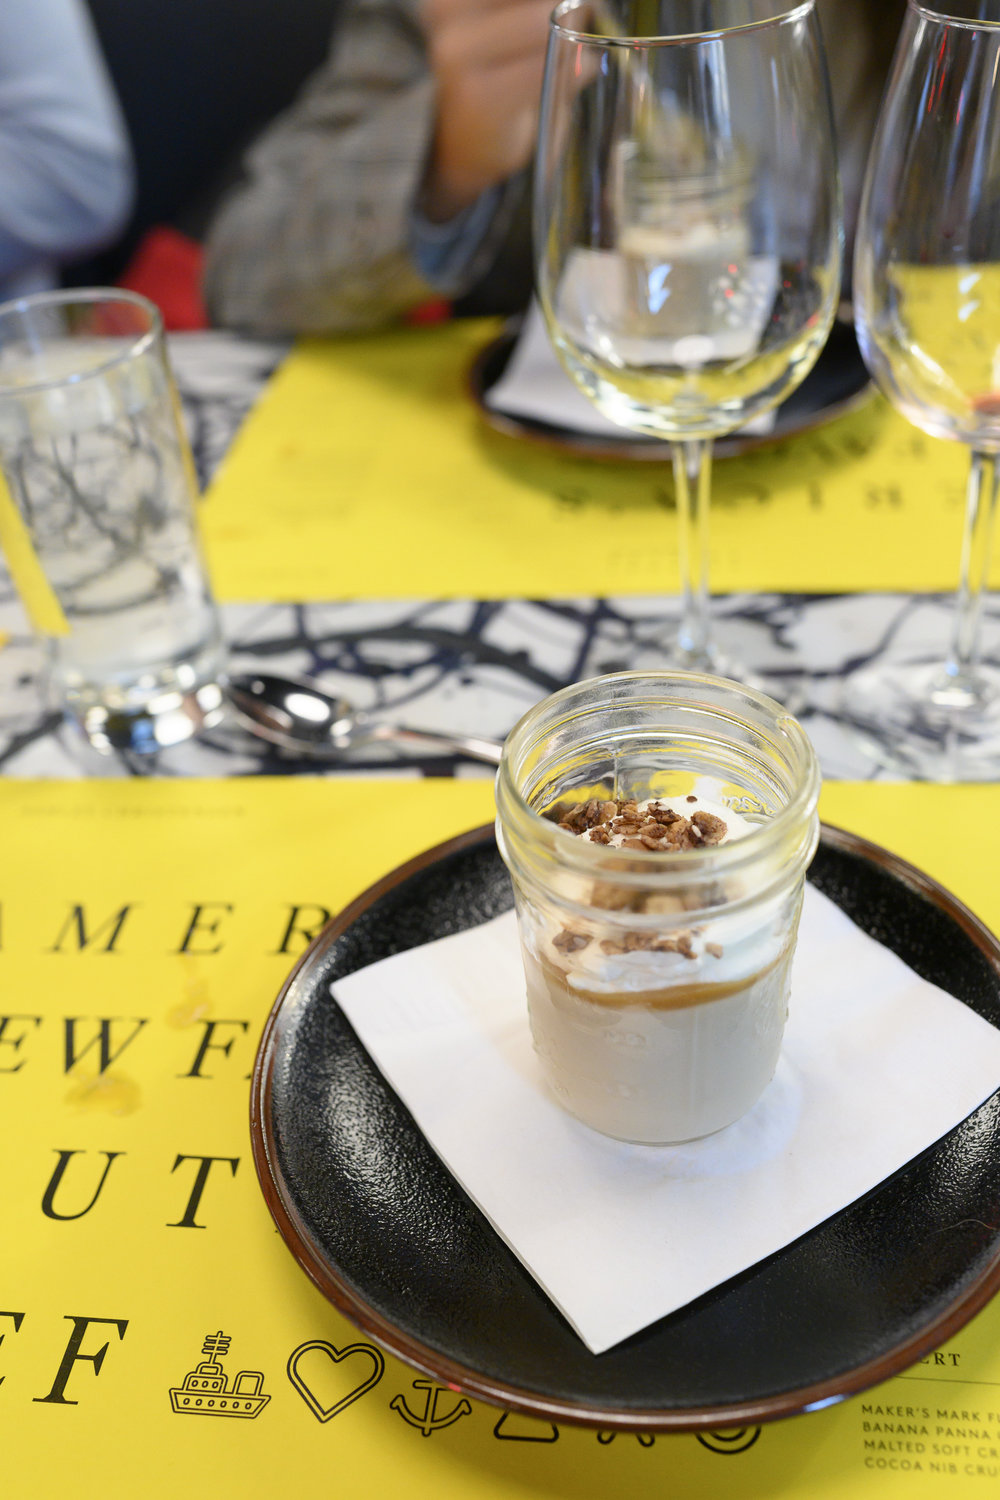 Maker's Mark Flambeed Banana Panna Cotta with Malted Soft Cream and Cocoa Nib Crunch